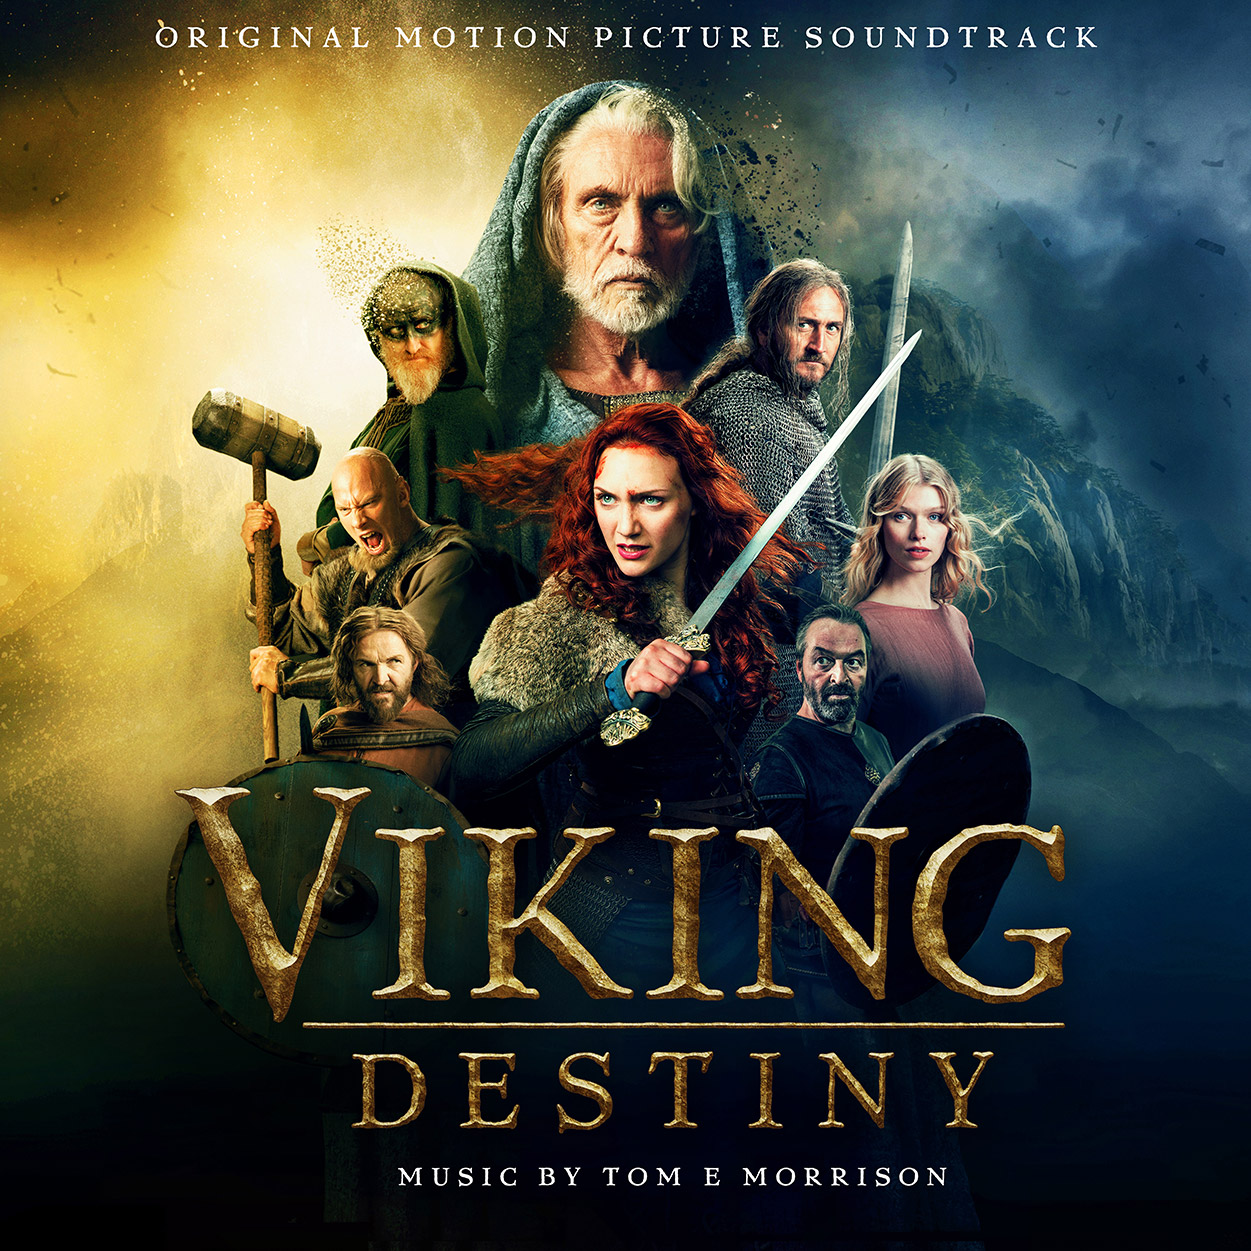 Viking-Destiny-Soundtrack-Cover